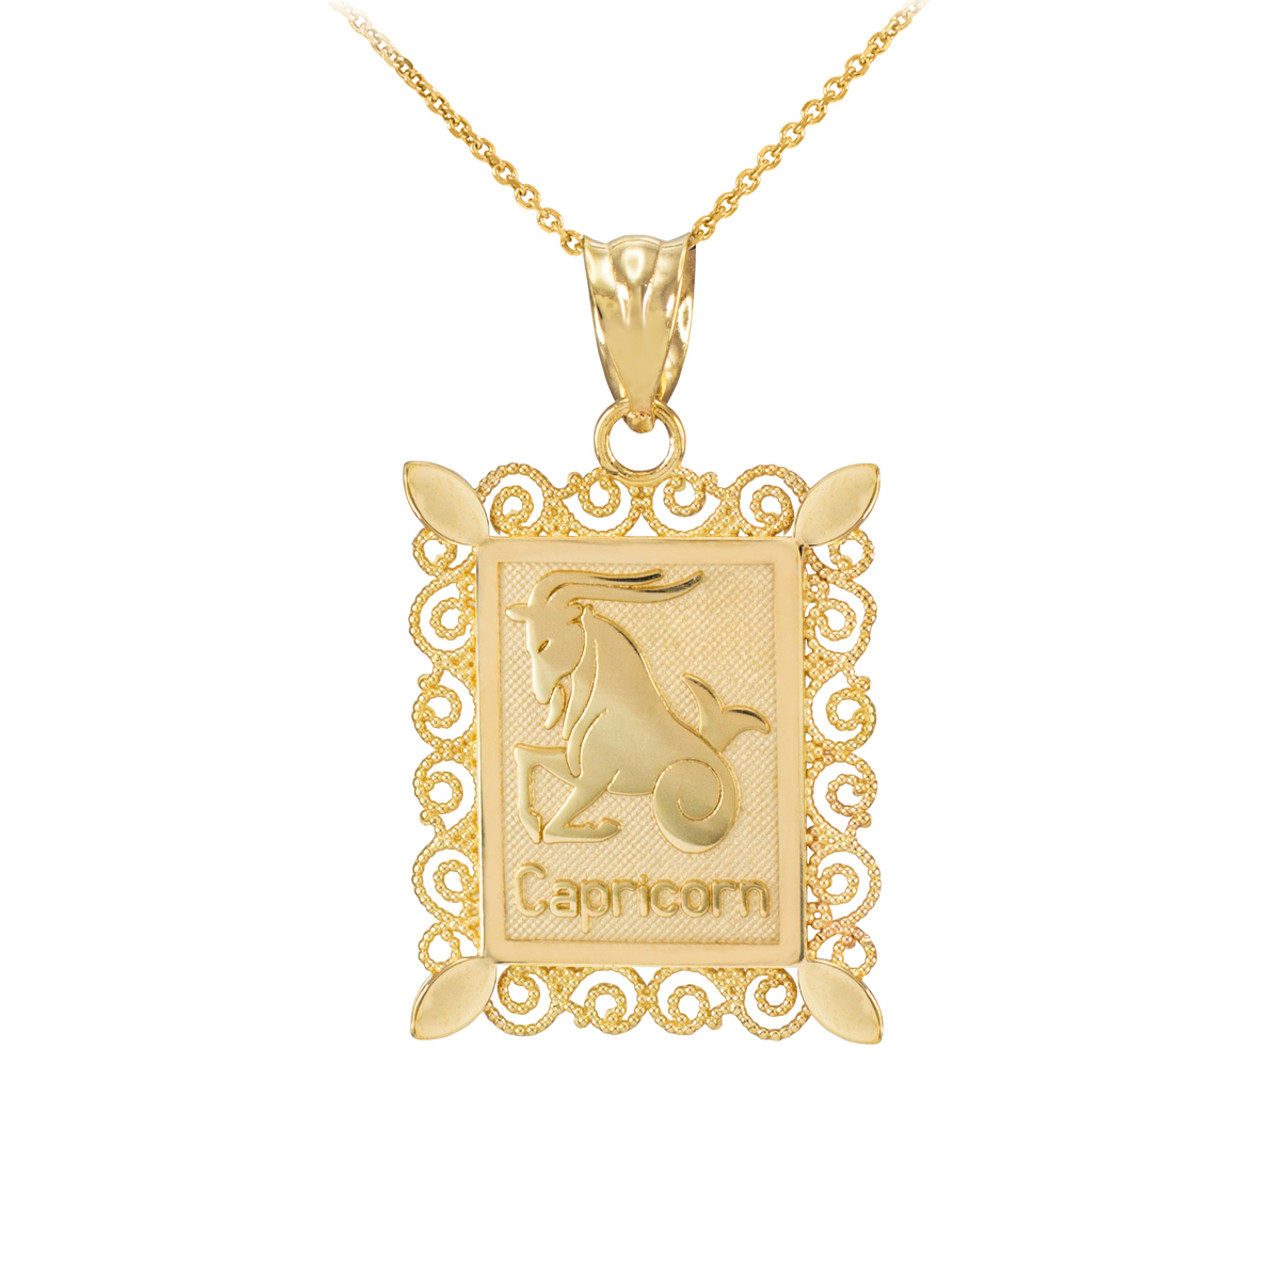 danielle products img square necklace gold yellow open moosbrugger